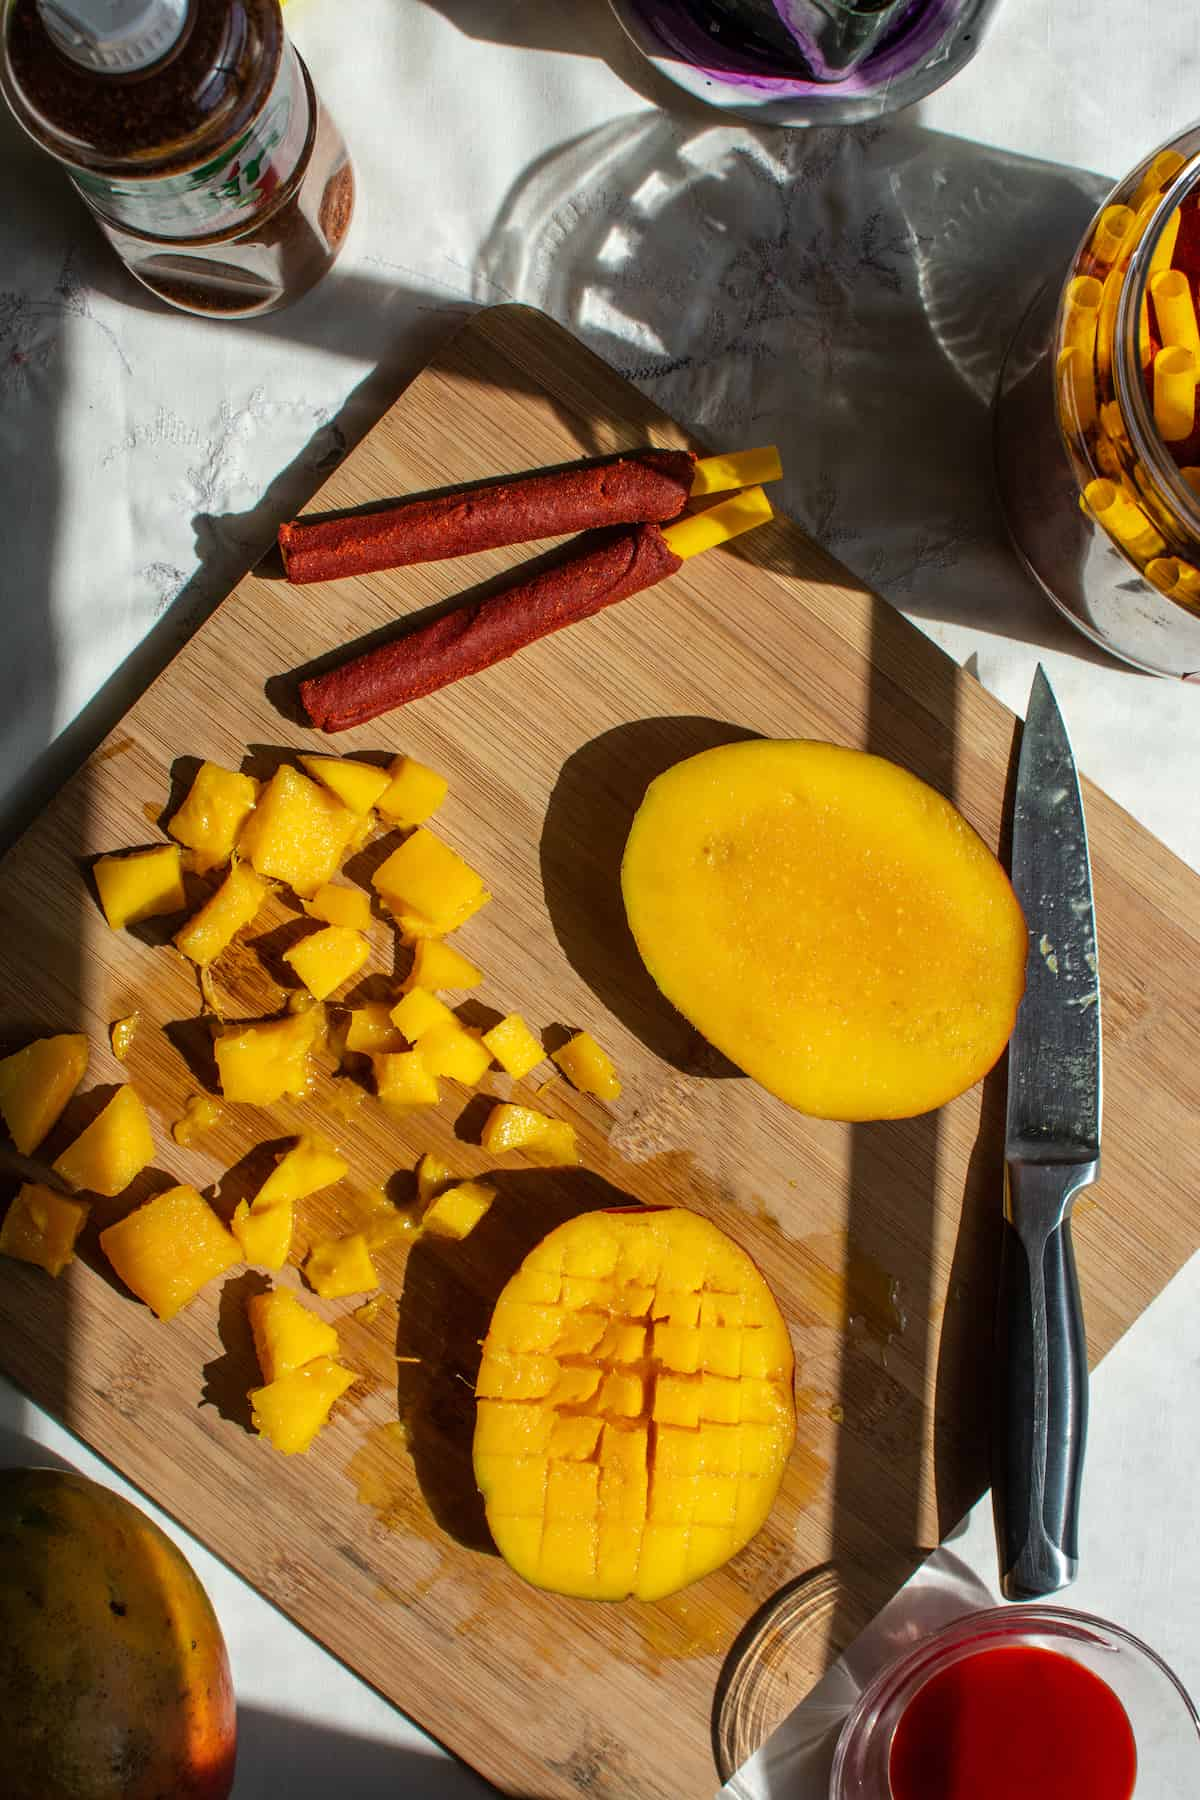 Overhead image of a mango being cut into small pieces sitting on a wood cutting board with a knife and two tamarind straws.